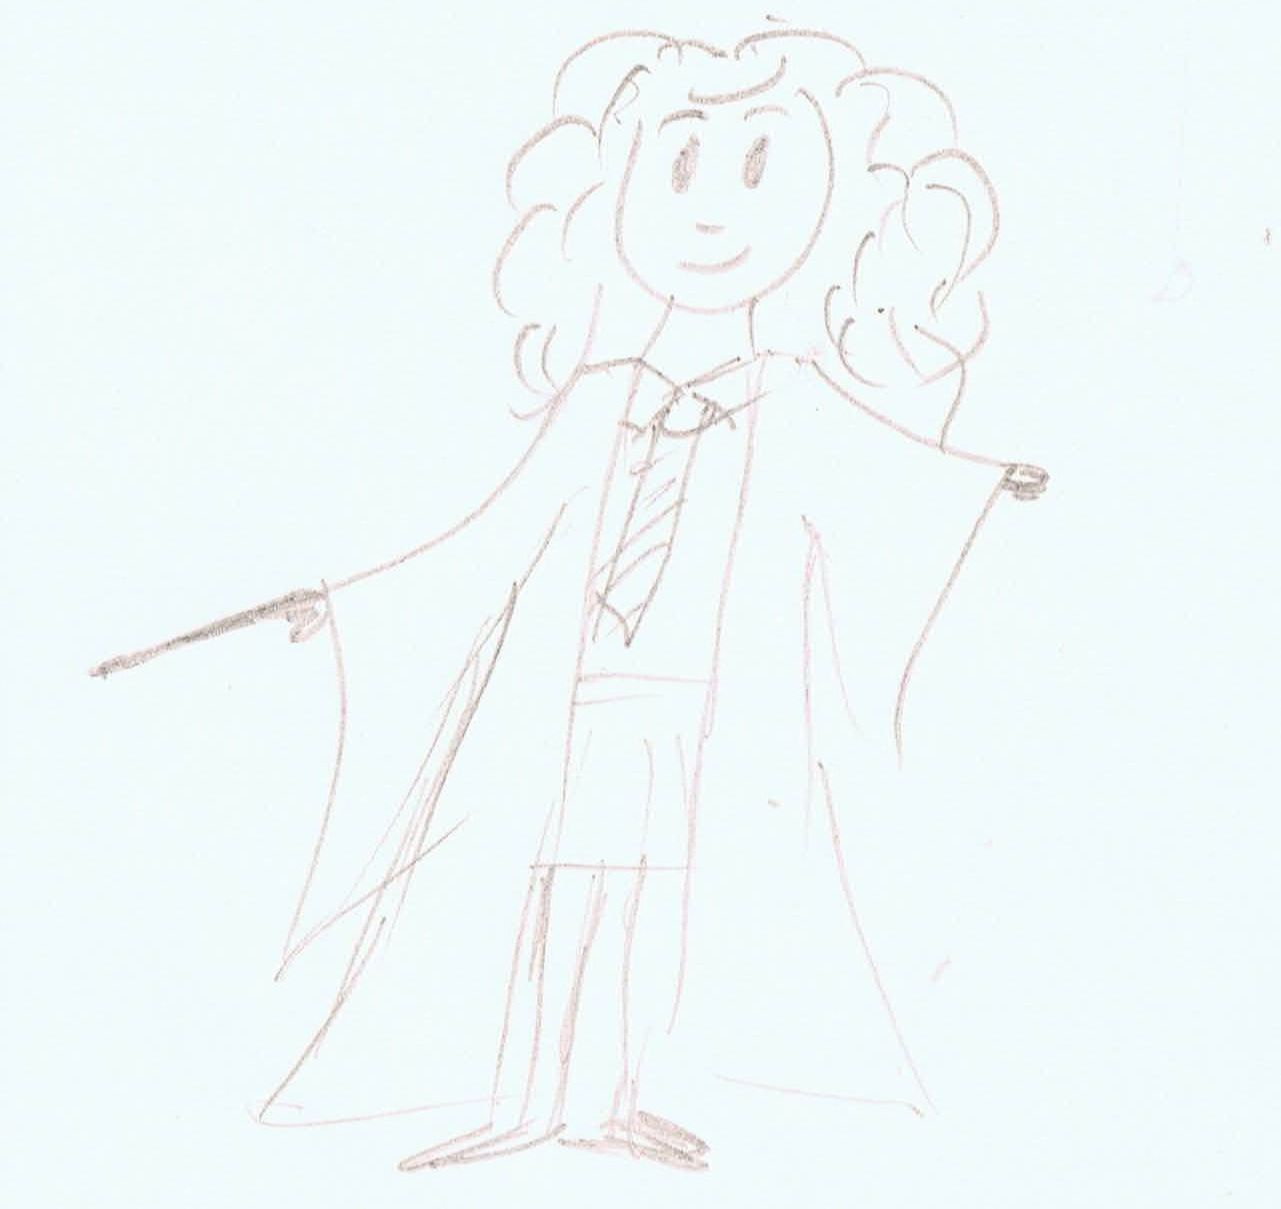 Image: child's drawing of Hermione from Harry Potter